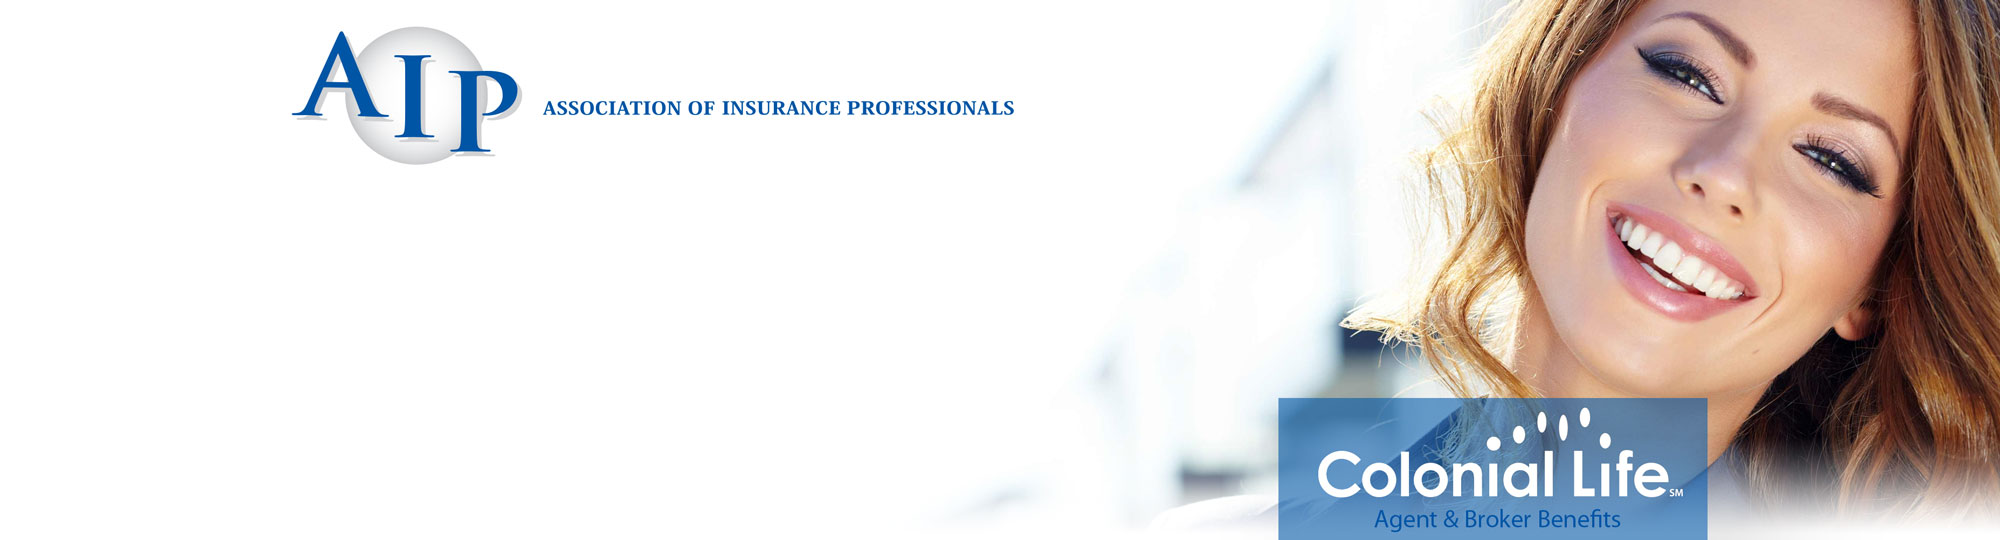 AIP Dental Insurance for Colonial Life Agents and Brokers